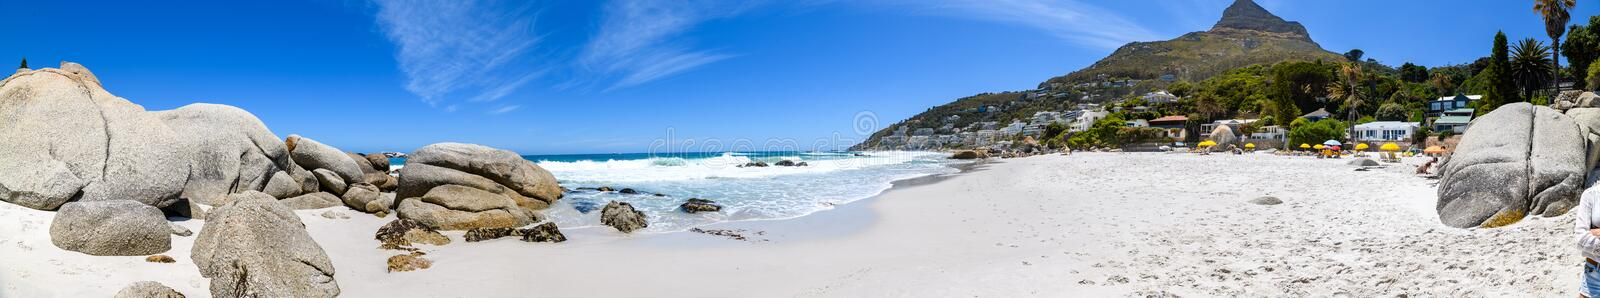 A panoramic view looking down on the beautiful white sand beaches of clifton in the cape town area of south africa.7 stock photos